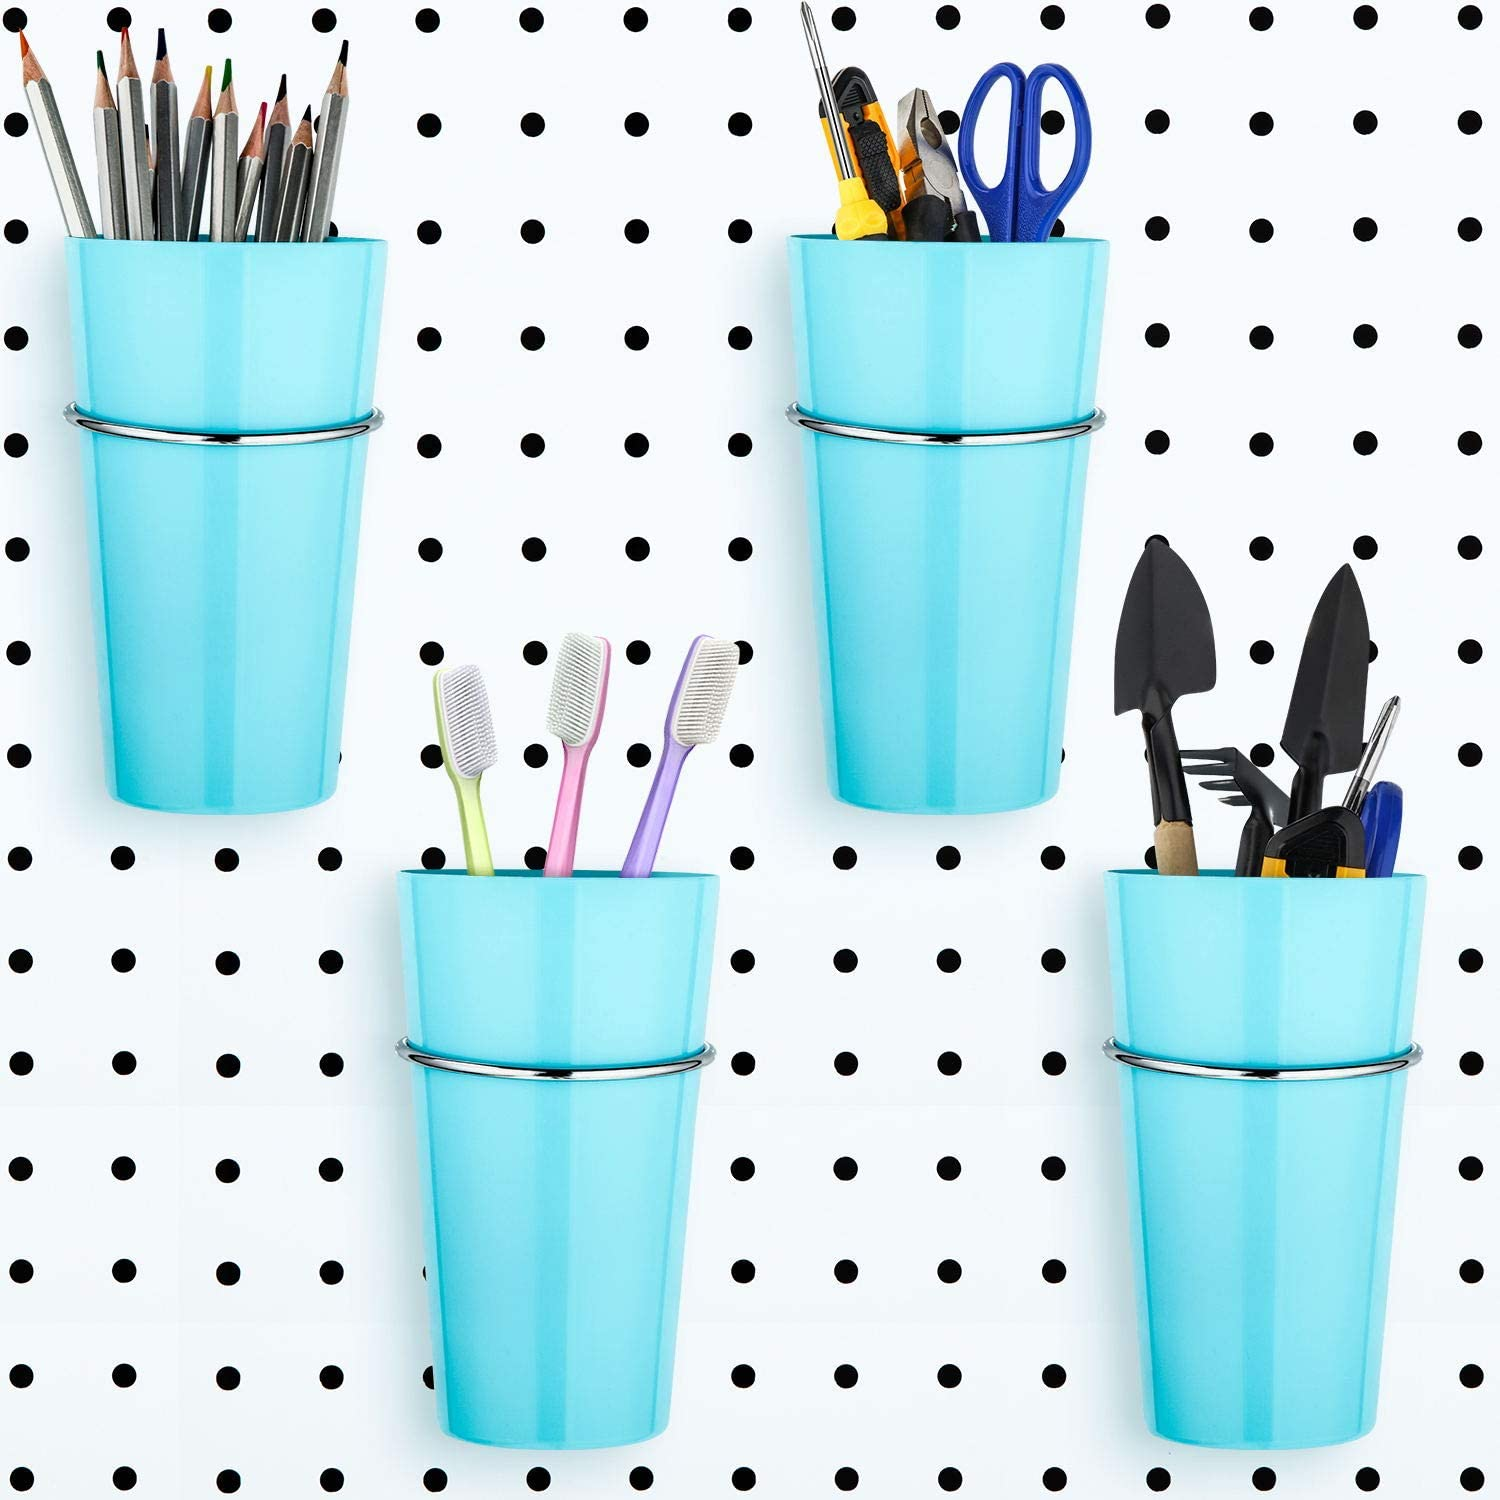 4 Sets Pegboard Bins with Rings, Ring Style Pegboard Hooks with Cups, Pegboard Cup Holder Accessories for Organizing (Blue)